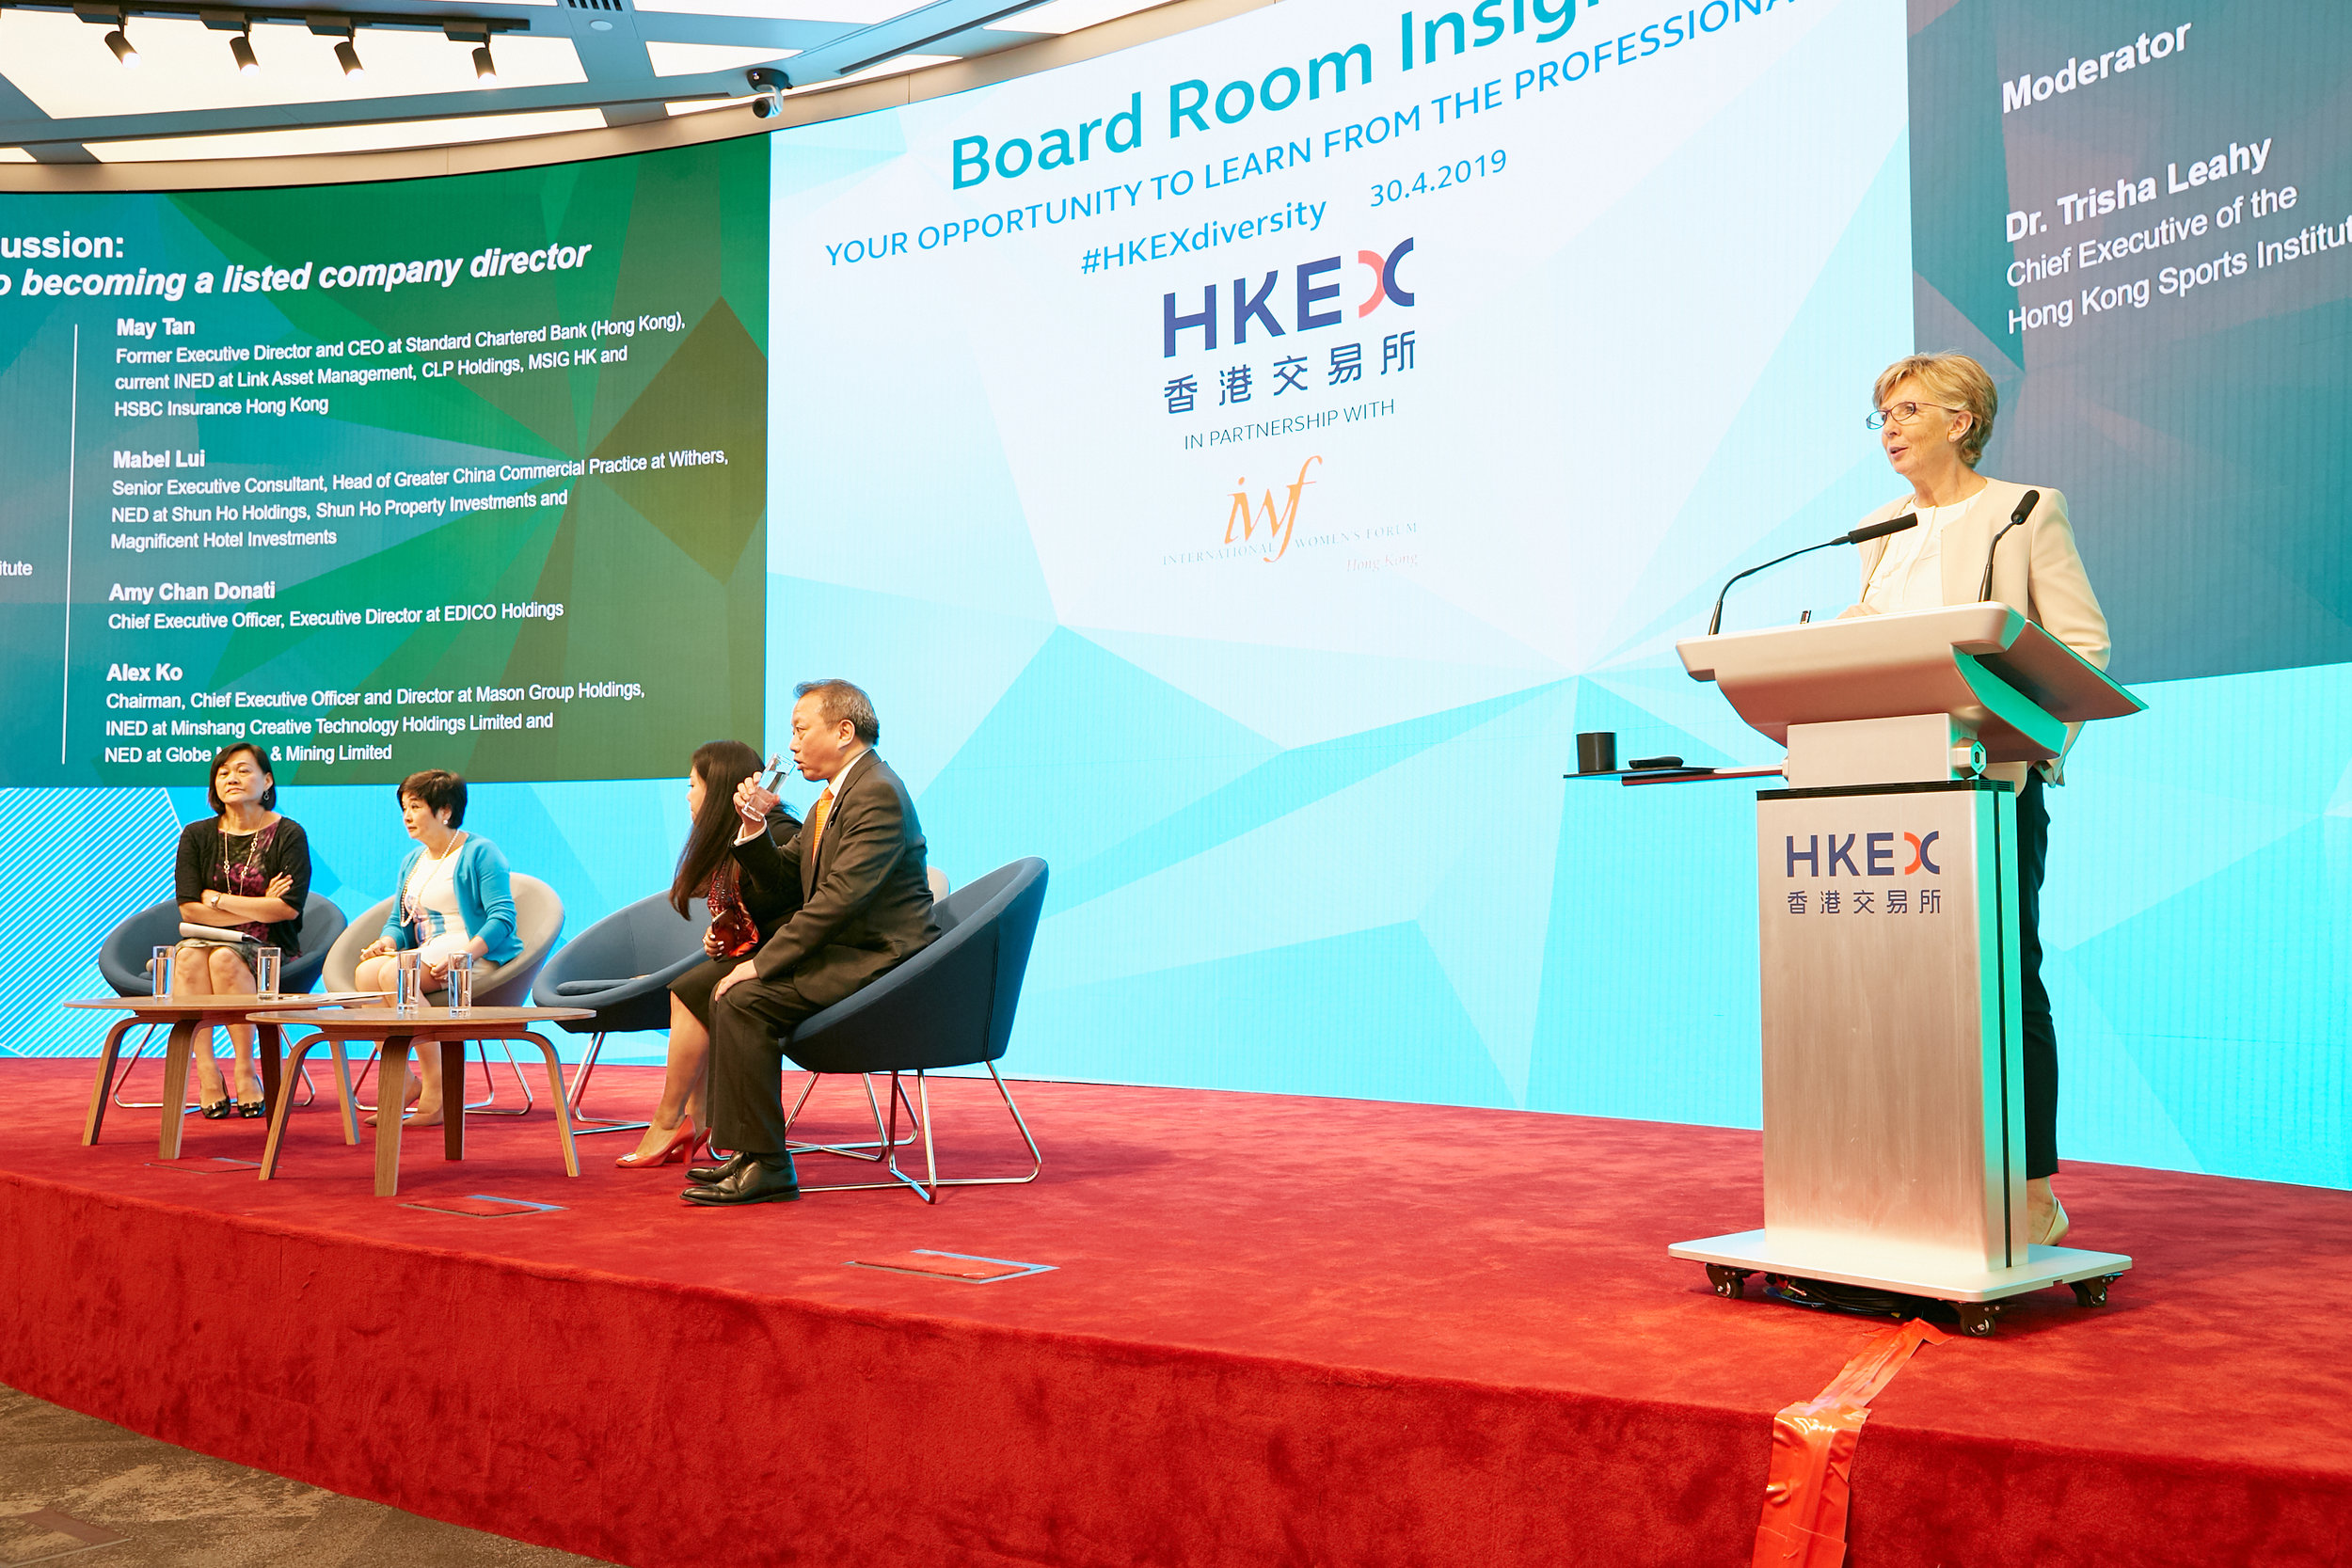 IWF-HK Past President Trisha Leahy moderates a panel on 'Path to becoming a listed company director' with Mabel Lui, IWF-HK member, among the panelists